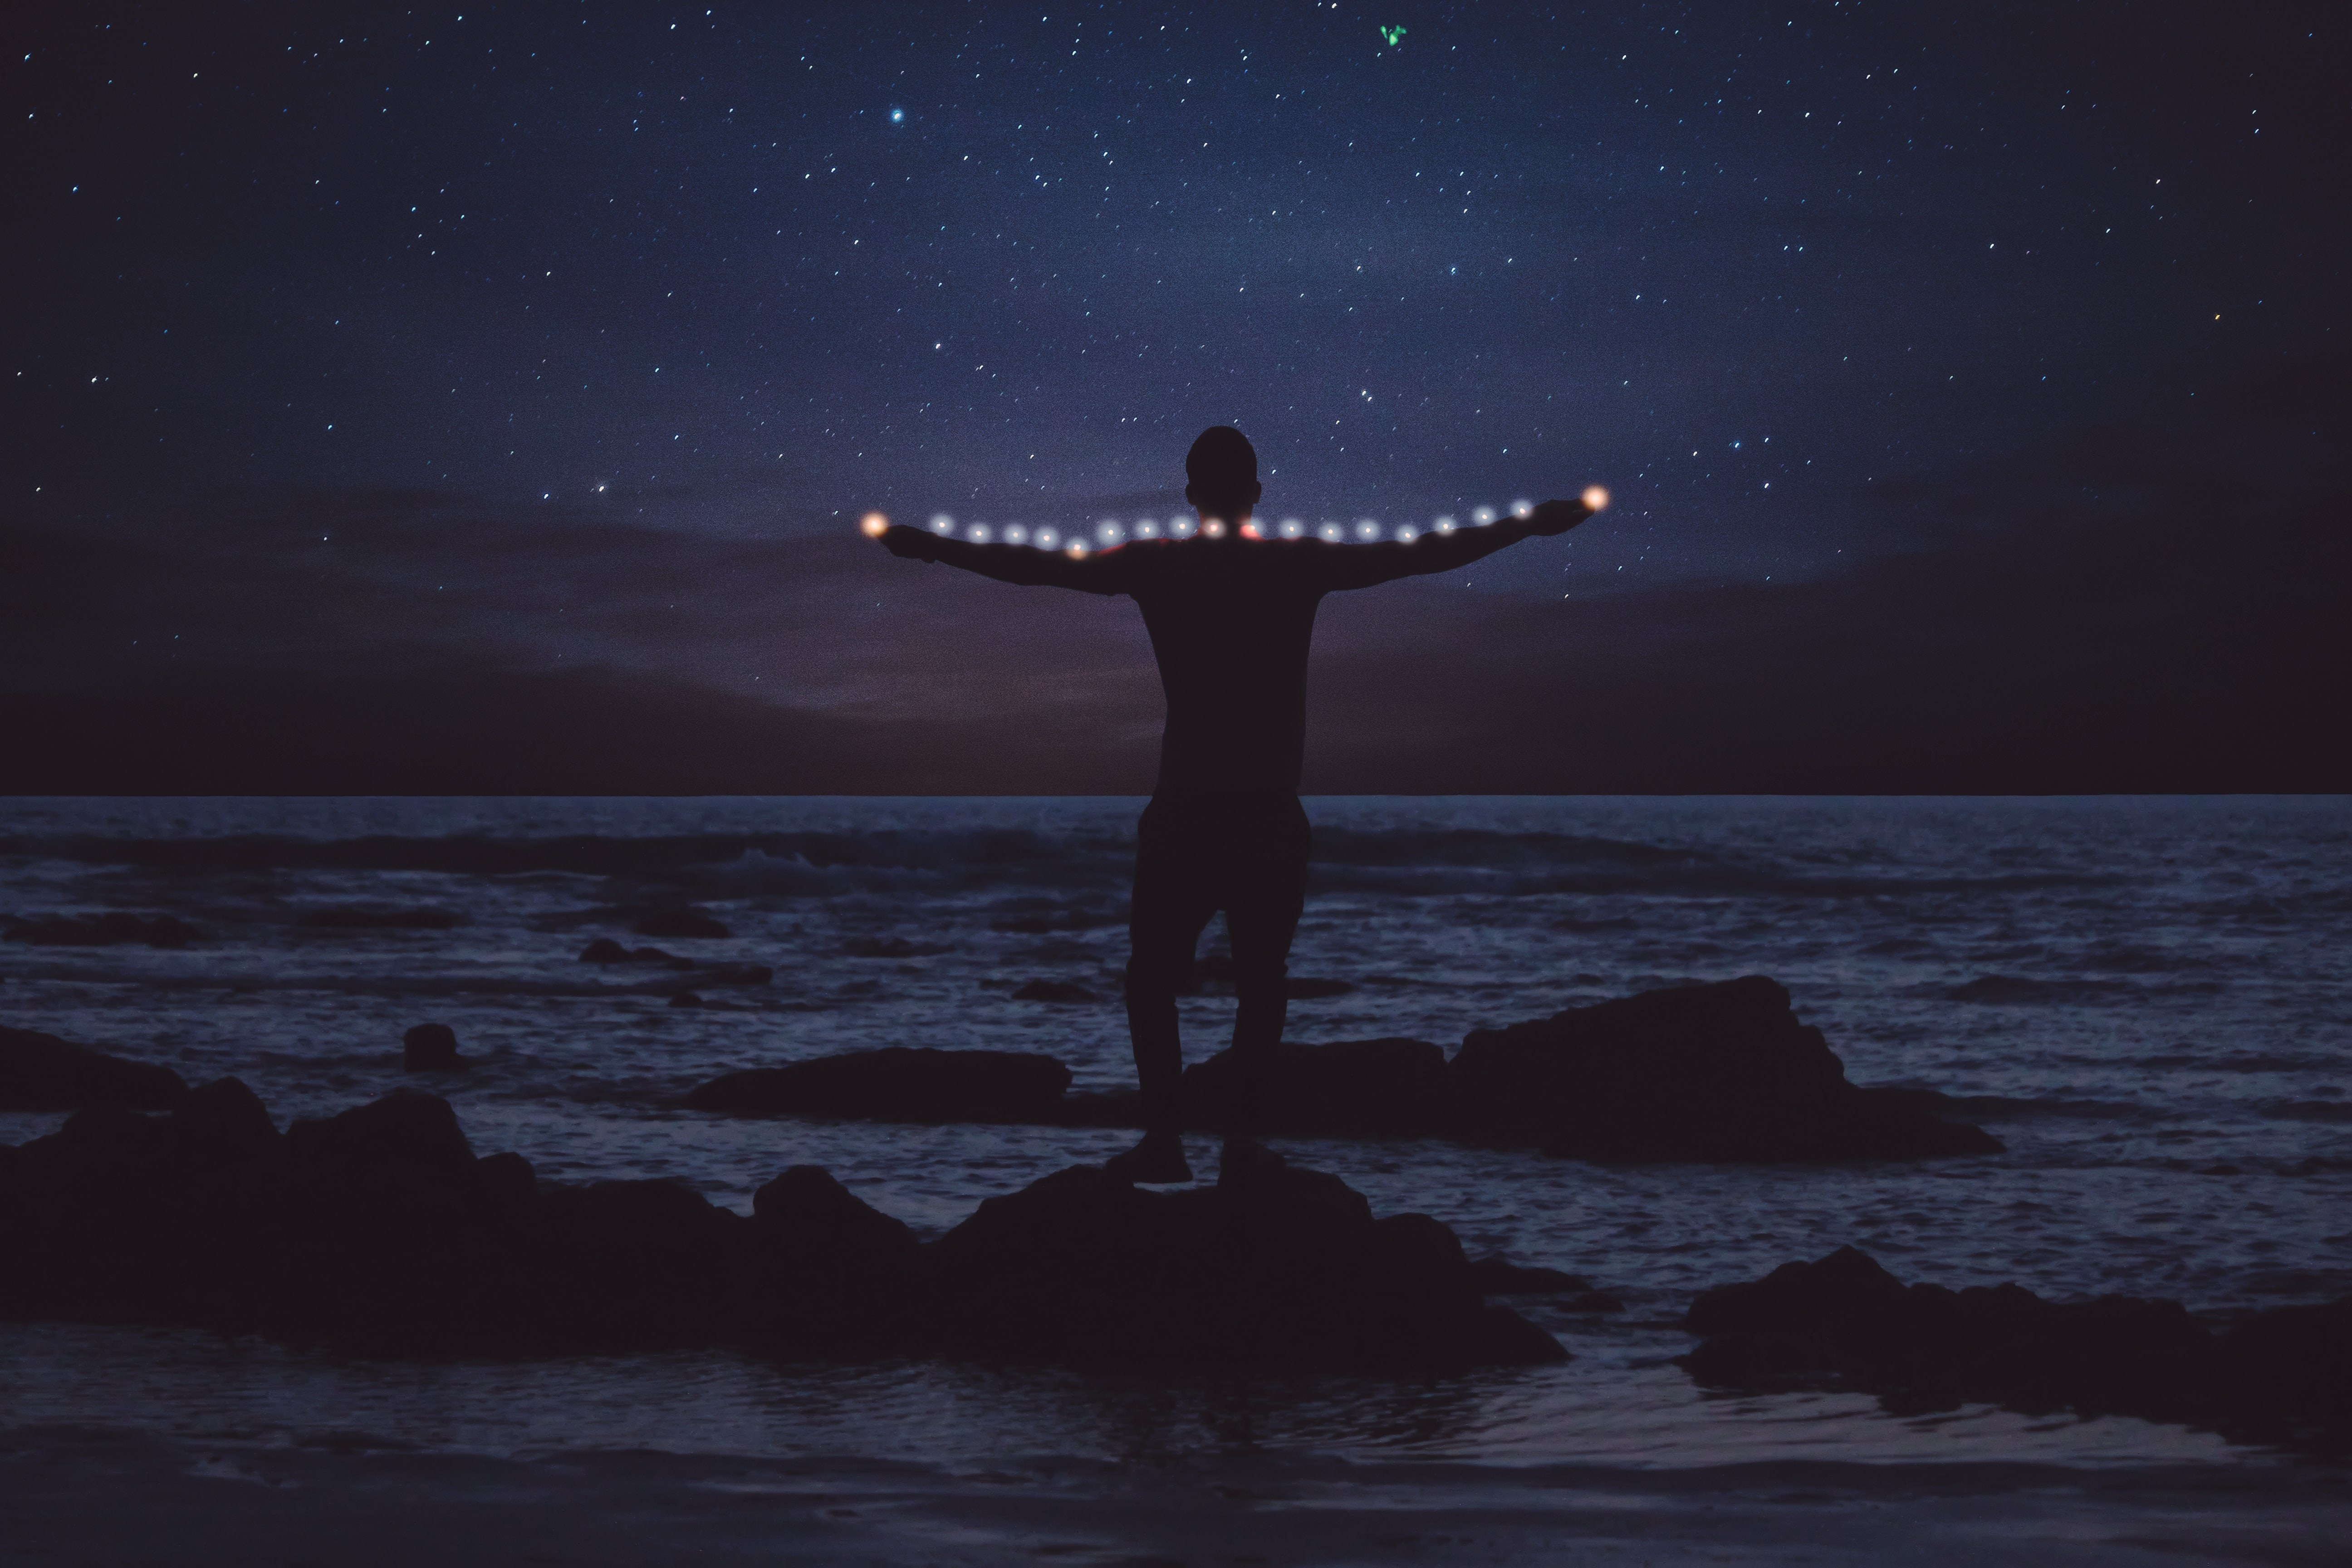 silhouette of person standing on rock on shore stretching string light at night